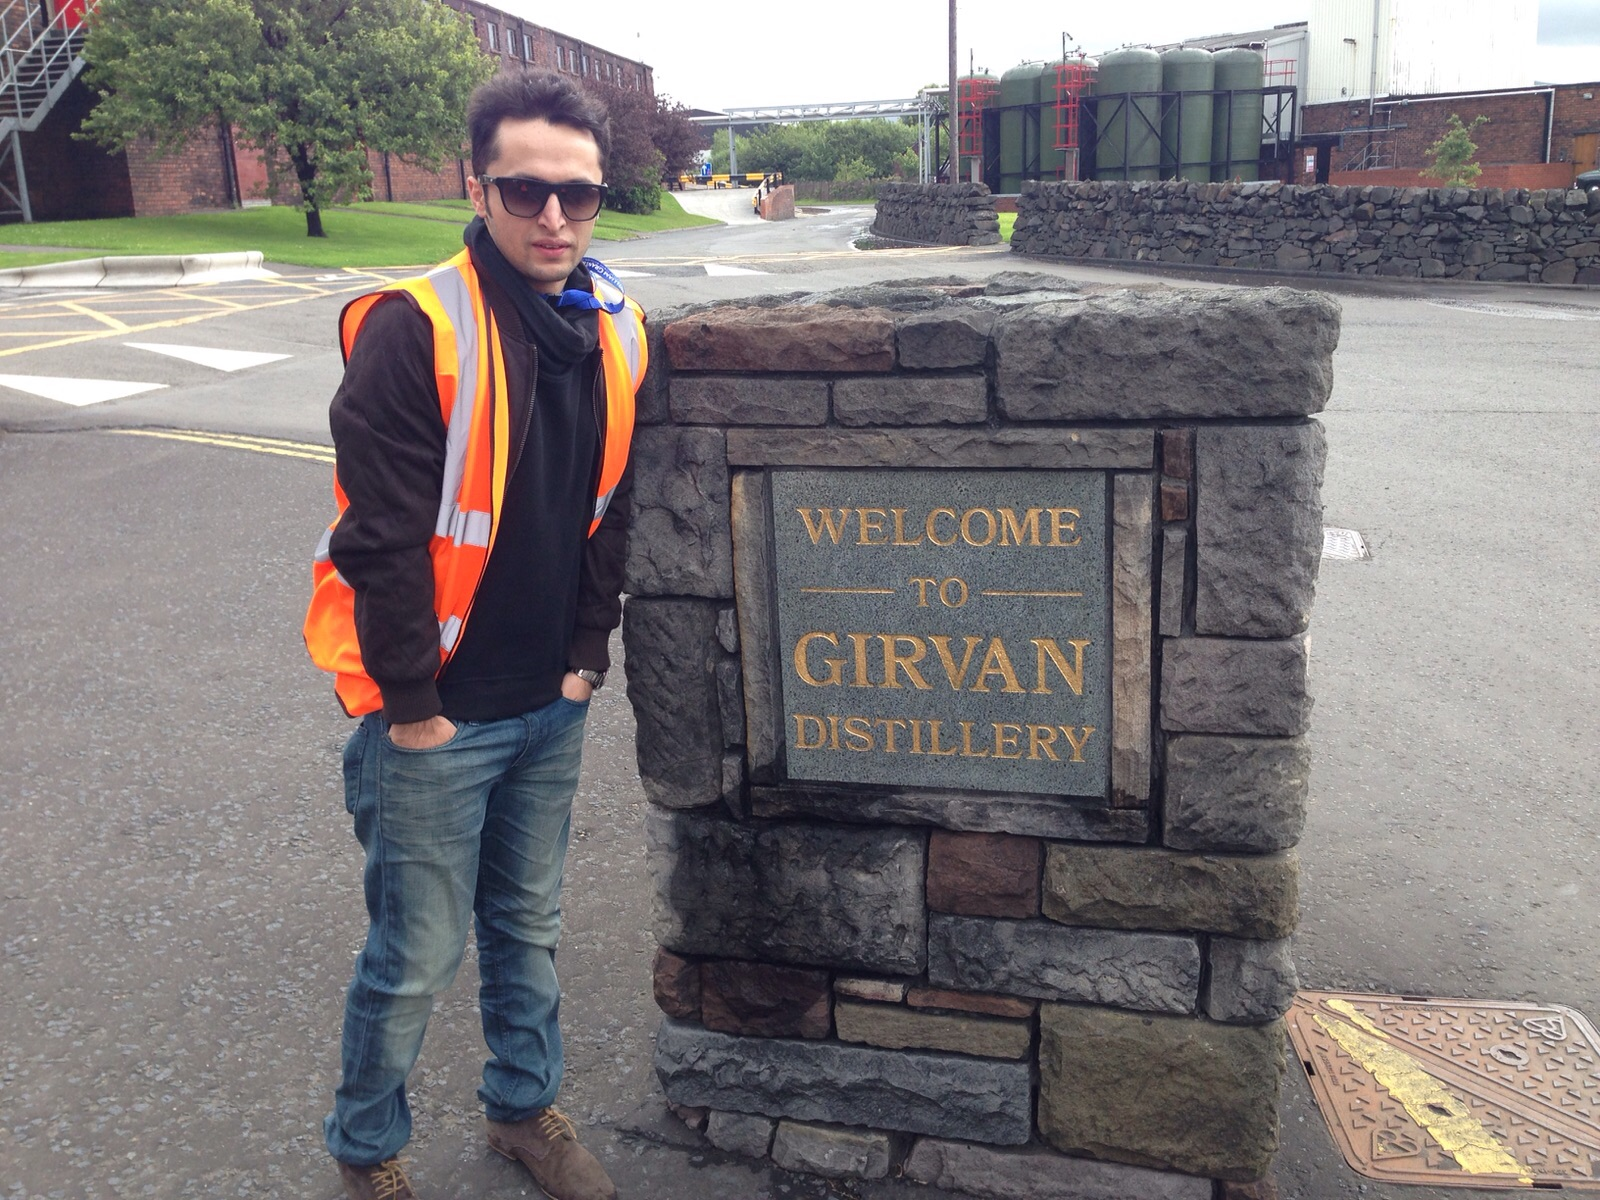 Grant, RohanBhardwaj, Scotland, whiskieconnoisseur TravelDiaries, StyleRugTravel, Like4like, FollowForFollow, InstaHit